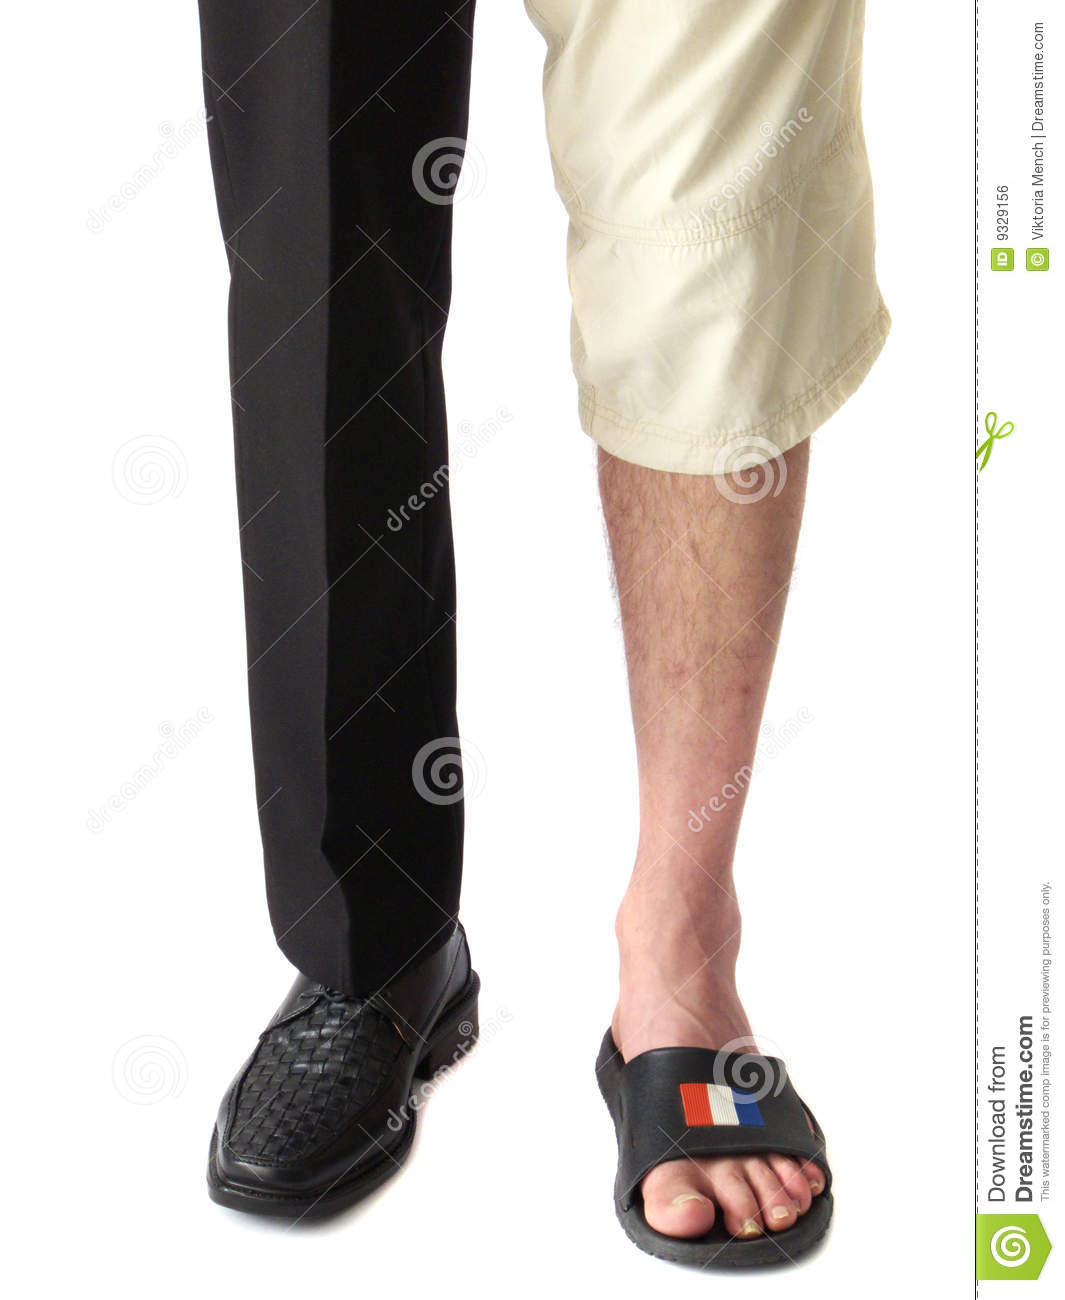 Job vs vacation stock photo. Image of flip, clothes, flop ...